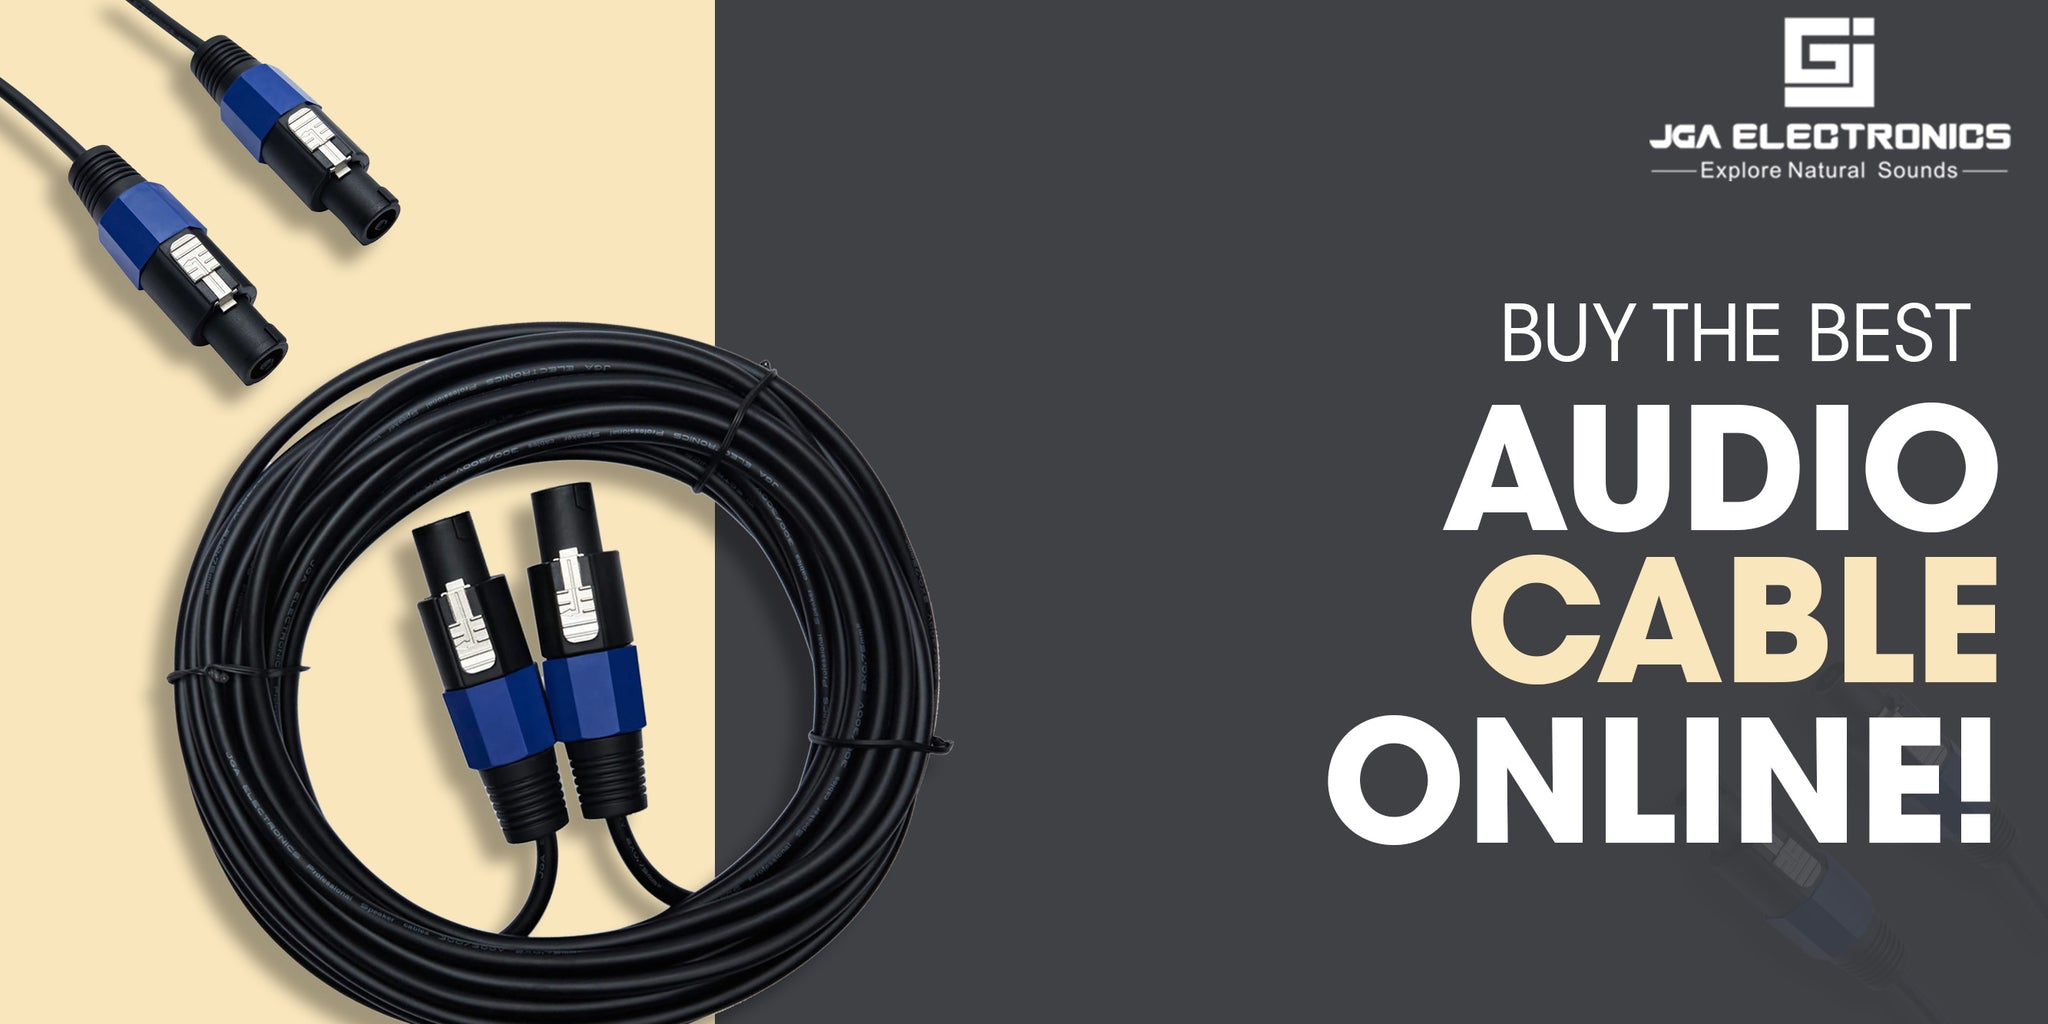 Buy audio cable online